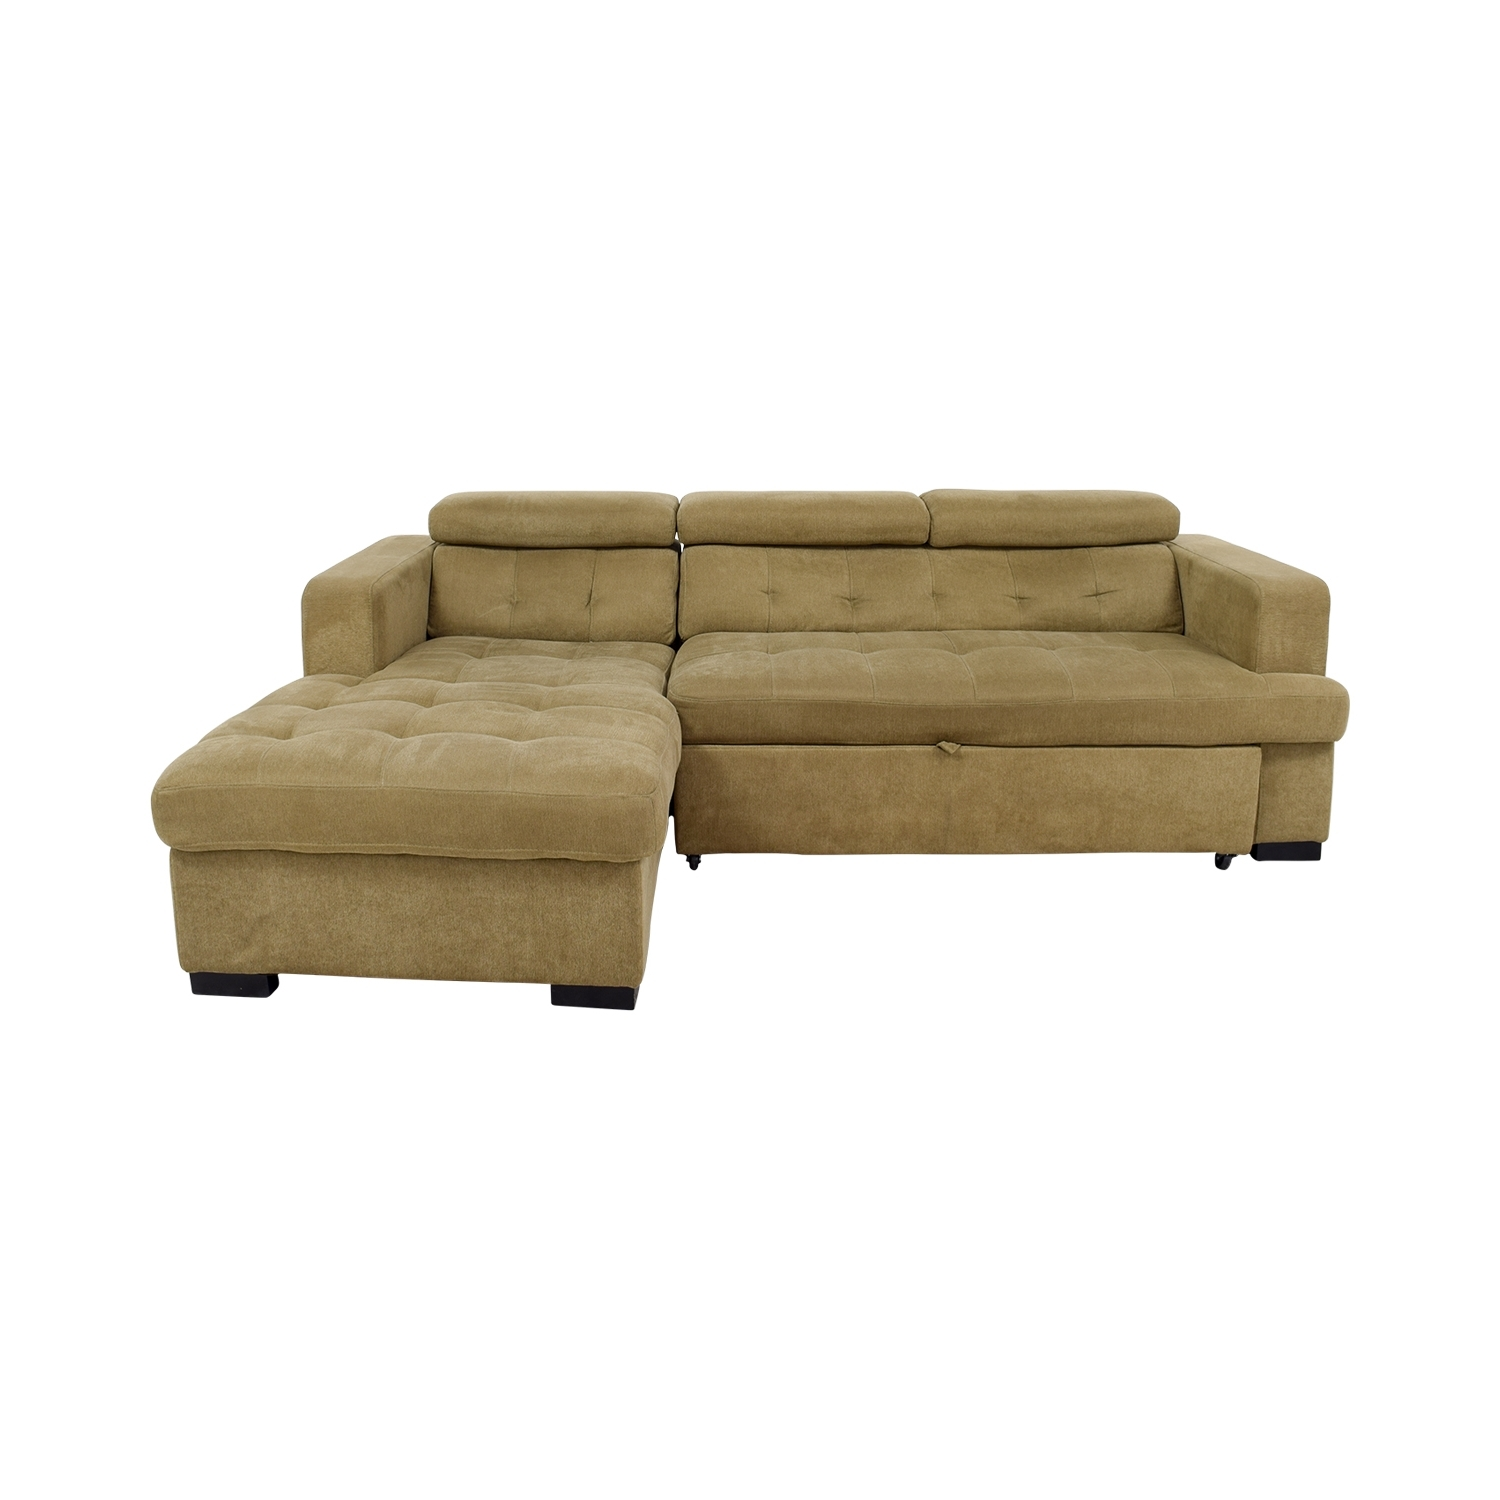 [%59% Off – Bob's Furniture Bob's Furniture Gold Chaise Sectional Within Newest Chaise Sectional Sleepers|Chaise Sectional Sleepers Within Preferred 59% Off – Bob's Furniture Bob's Furniture Gold Chaise Sectional|Trendy Chaise Sectional Sleepers Regarding 59% Off – Bob's Furniture Bob's Furniture Gold Chaise Sectional|Newest 59% Off – Bob's Furniture Bob's Furniture Gold Chaise Sectional Within Chaise Sectional Sleepers%] (View 8 of 15)